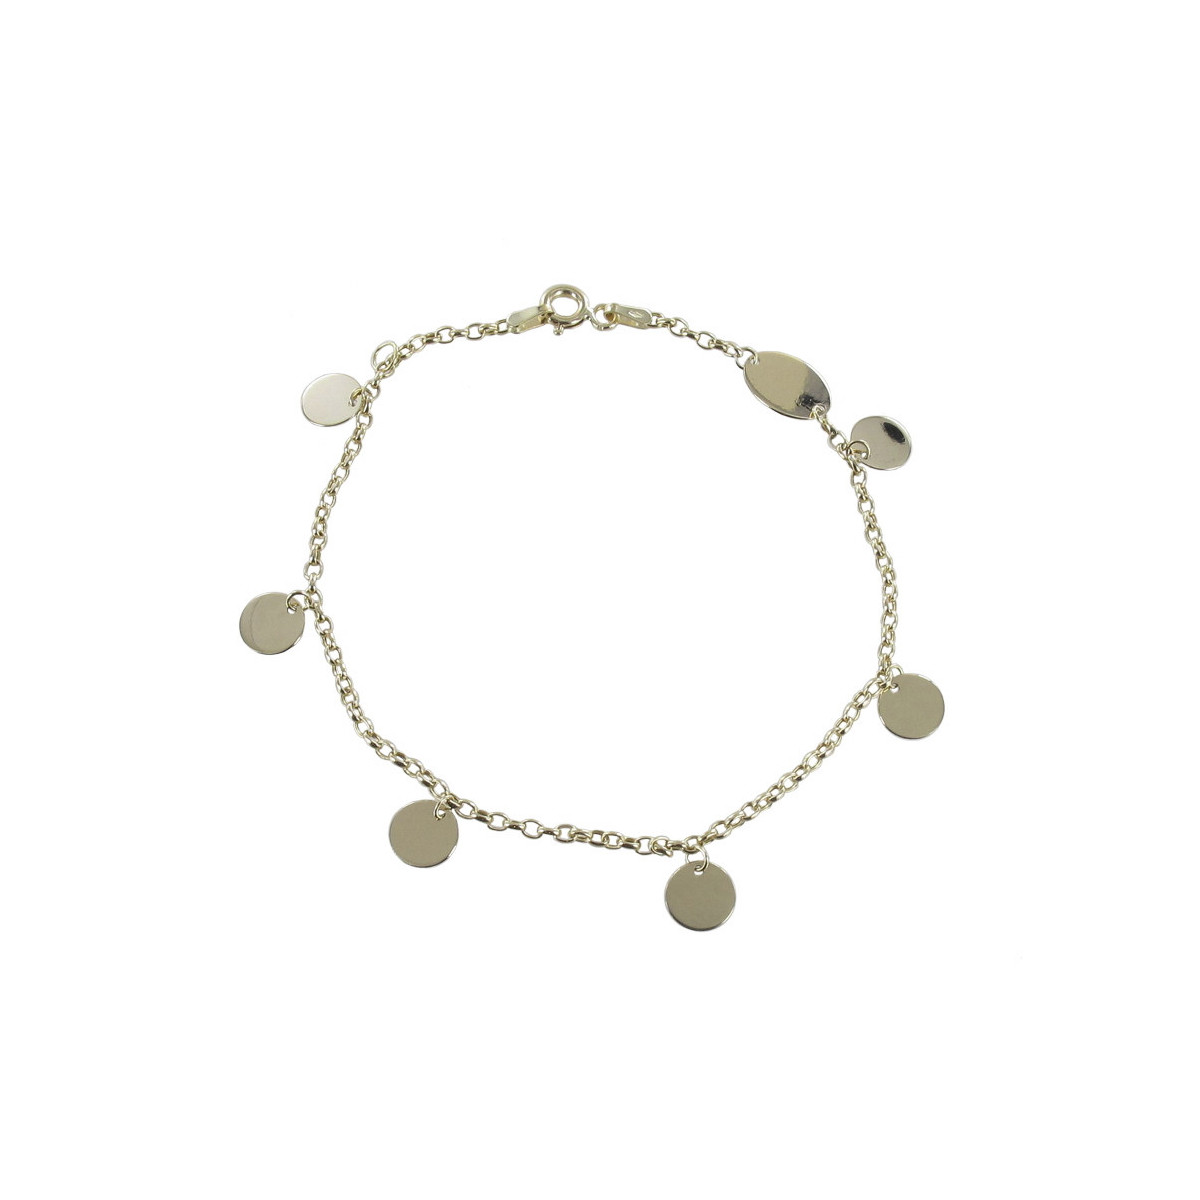 GOLD BRACELET WITH ENGRAVING PLATES